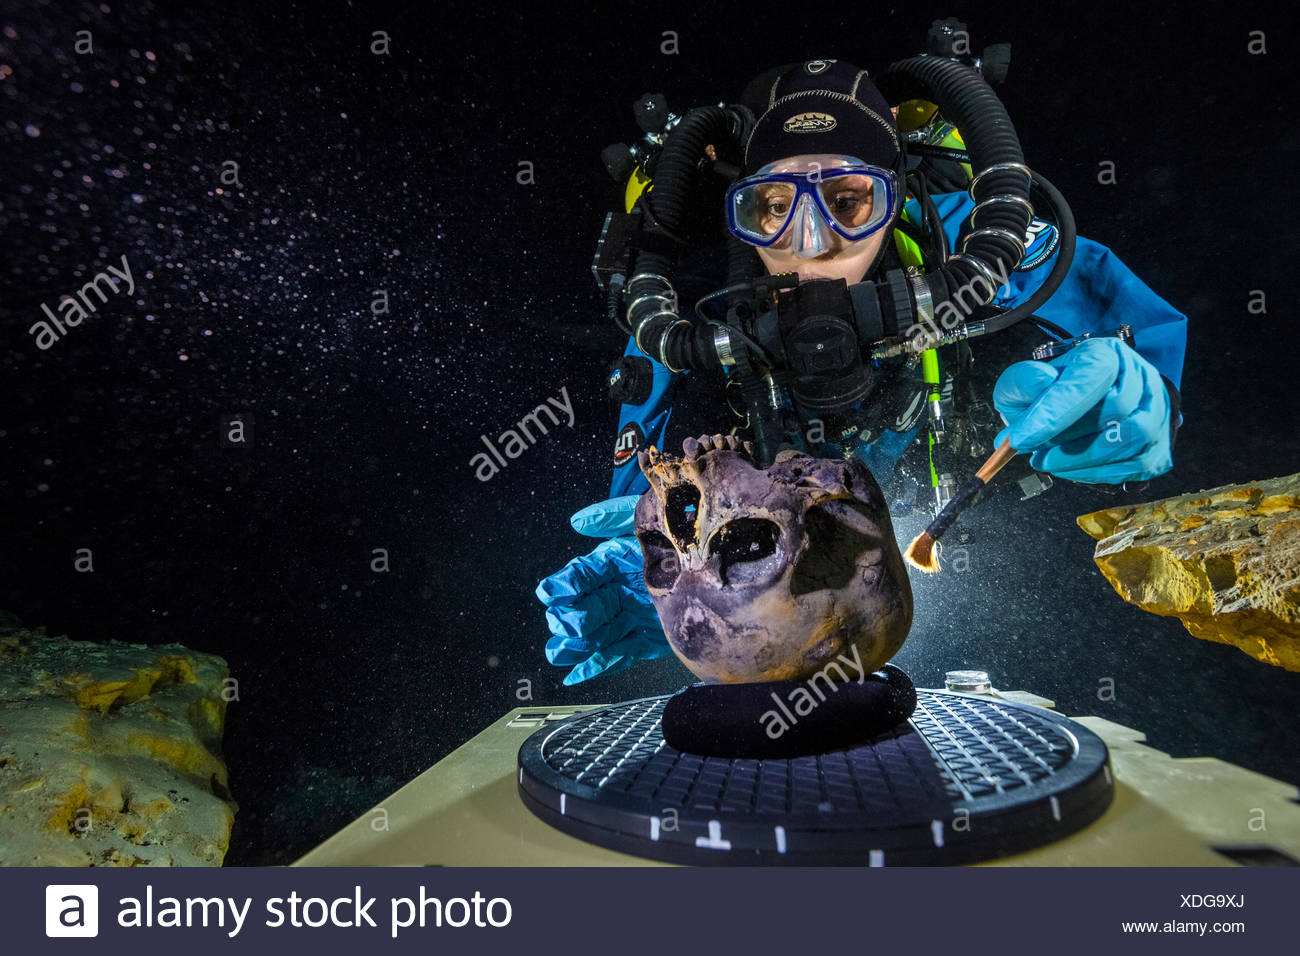 A diver brushes debris from the skull of 'Naia,' a teenage girl who died 12,000-13,000 years ago, onto a stand in Hoyo Negro. - Stock Image